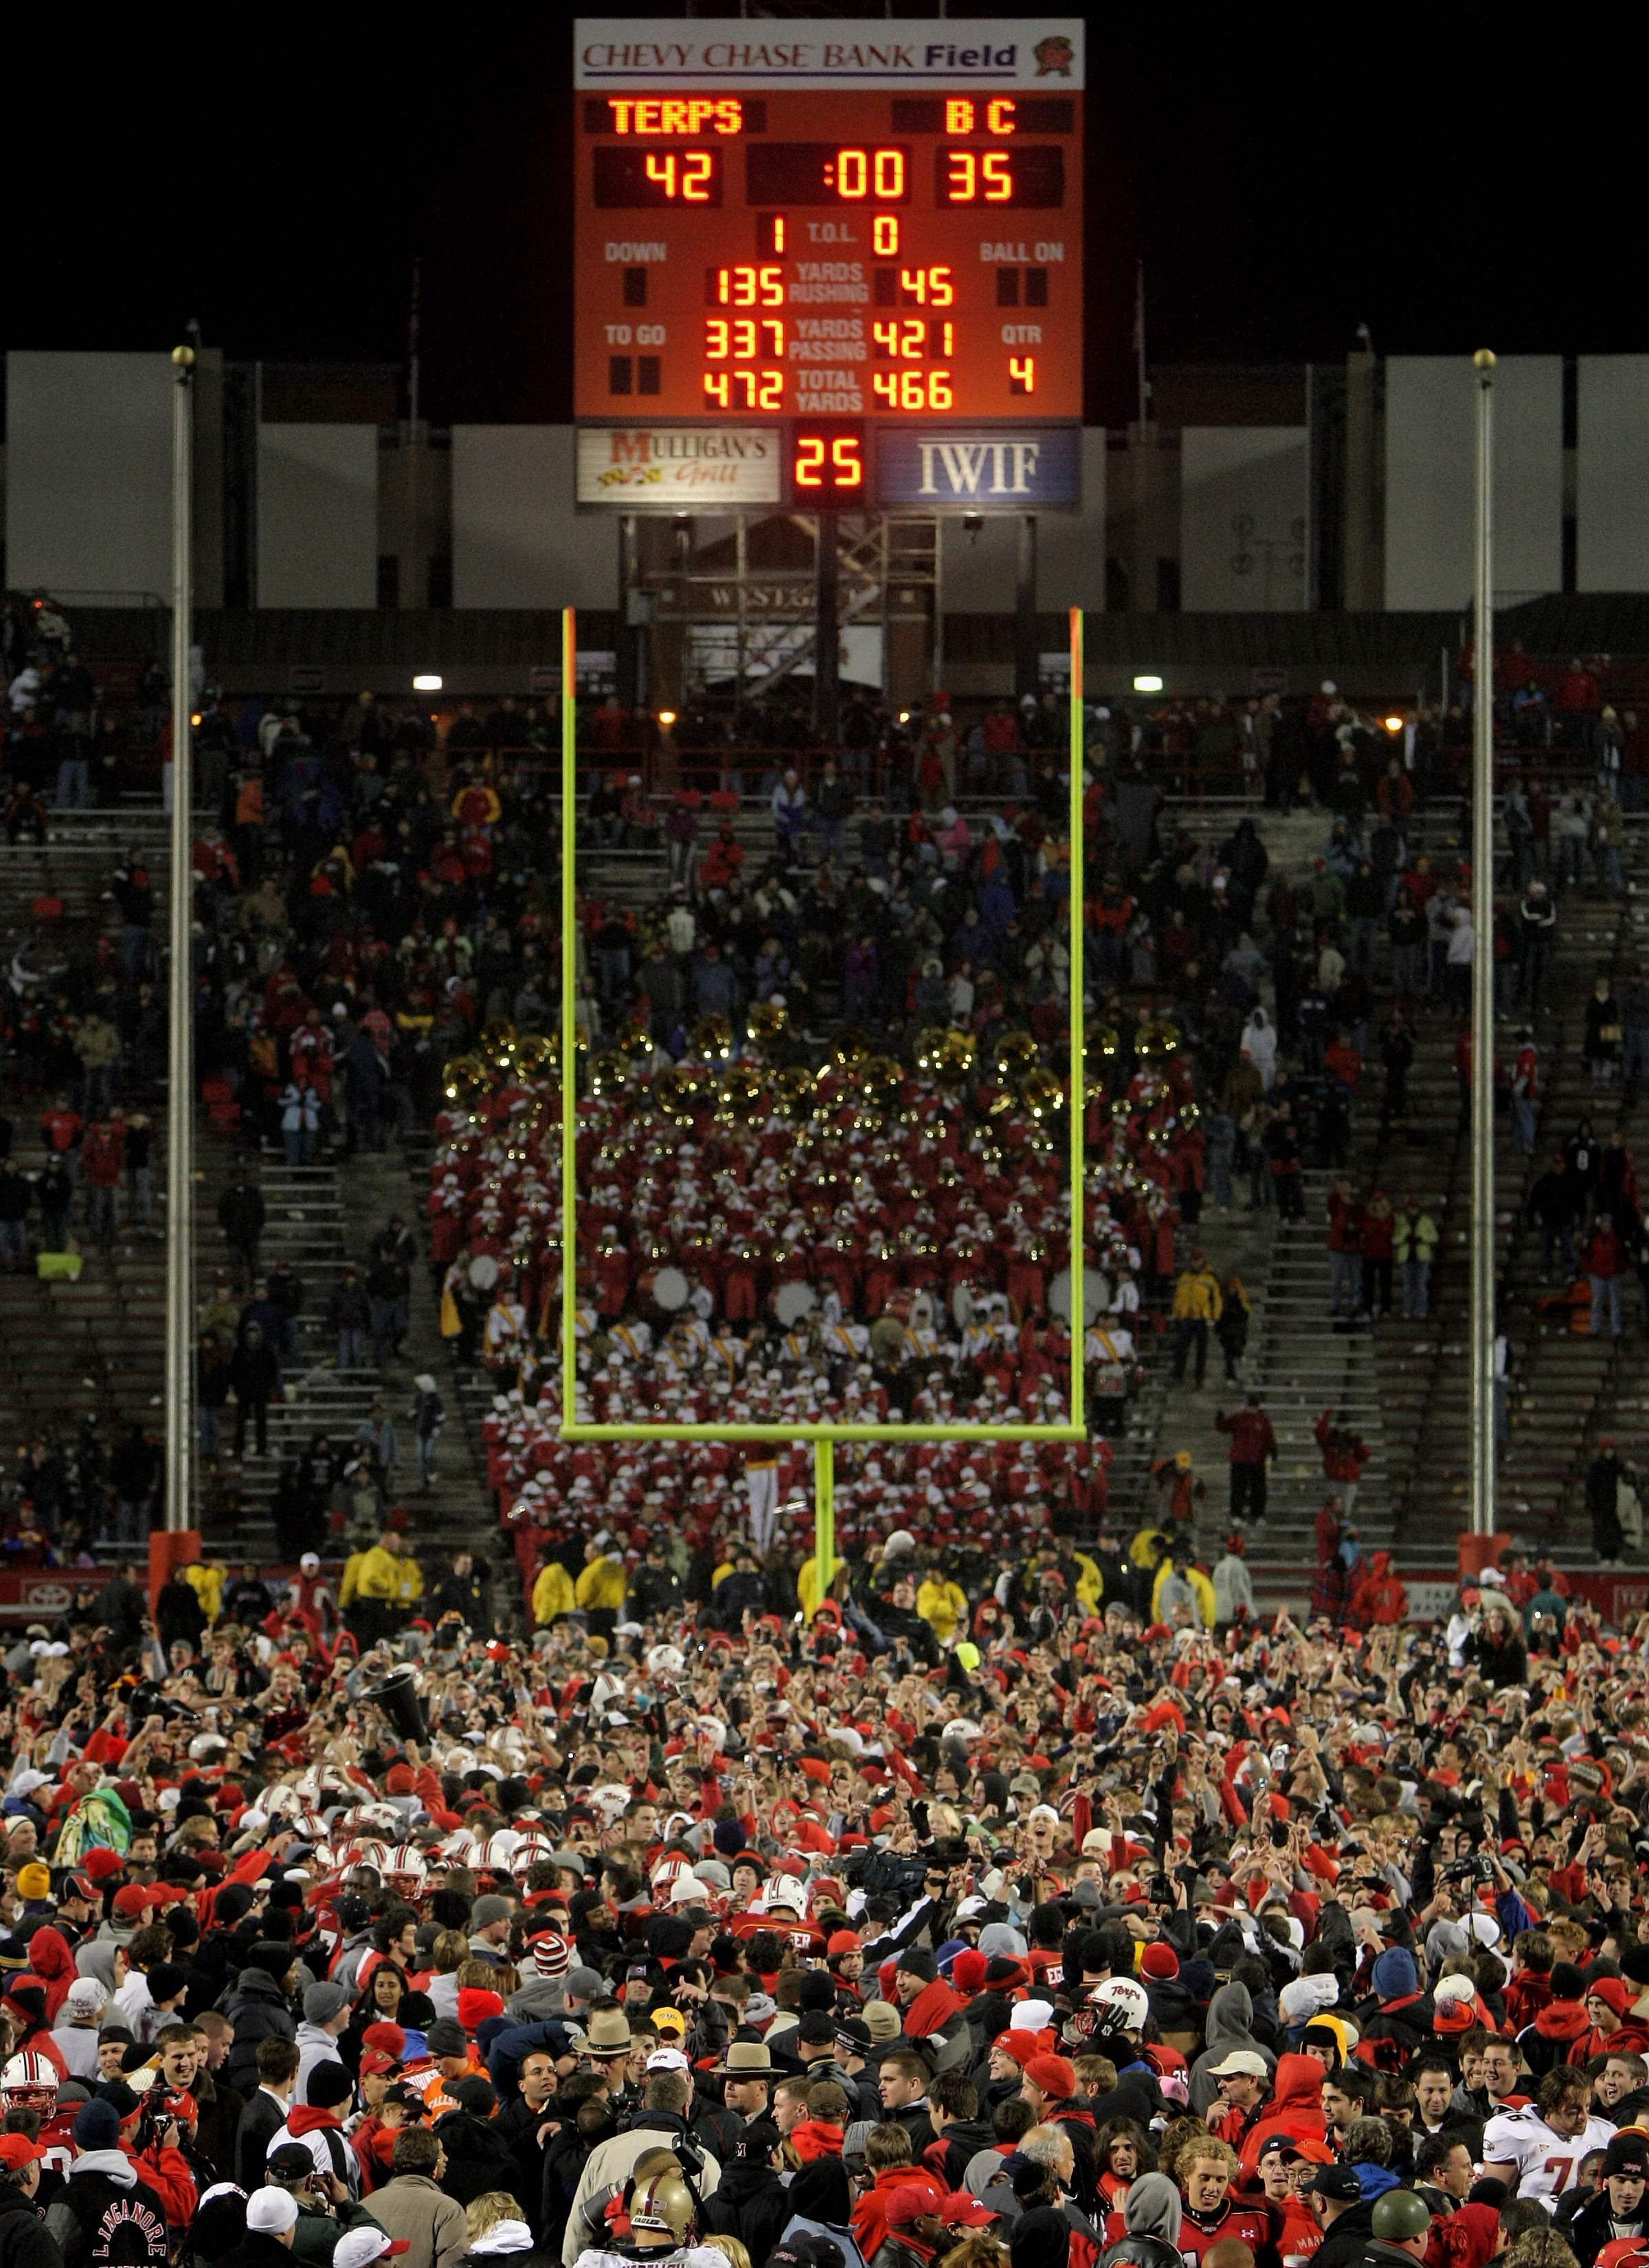 COLLEGE PARK, MD - NOVEMBER 10:  Maryland fans flooded the field after the Maryland Terrapins defeated the Boston College Eagles 42-35 at Byrd Stadium on November 10, 2007 in College Park, Maryland.  (Photo by Doug Pensinger/Getty Images)